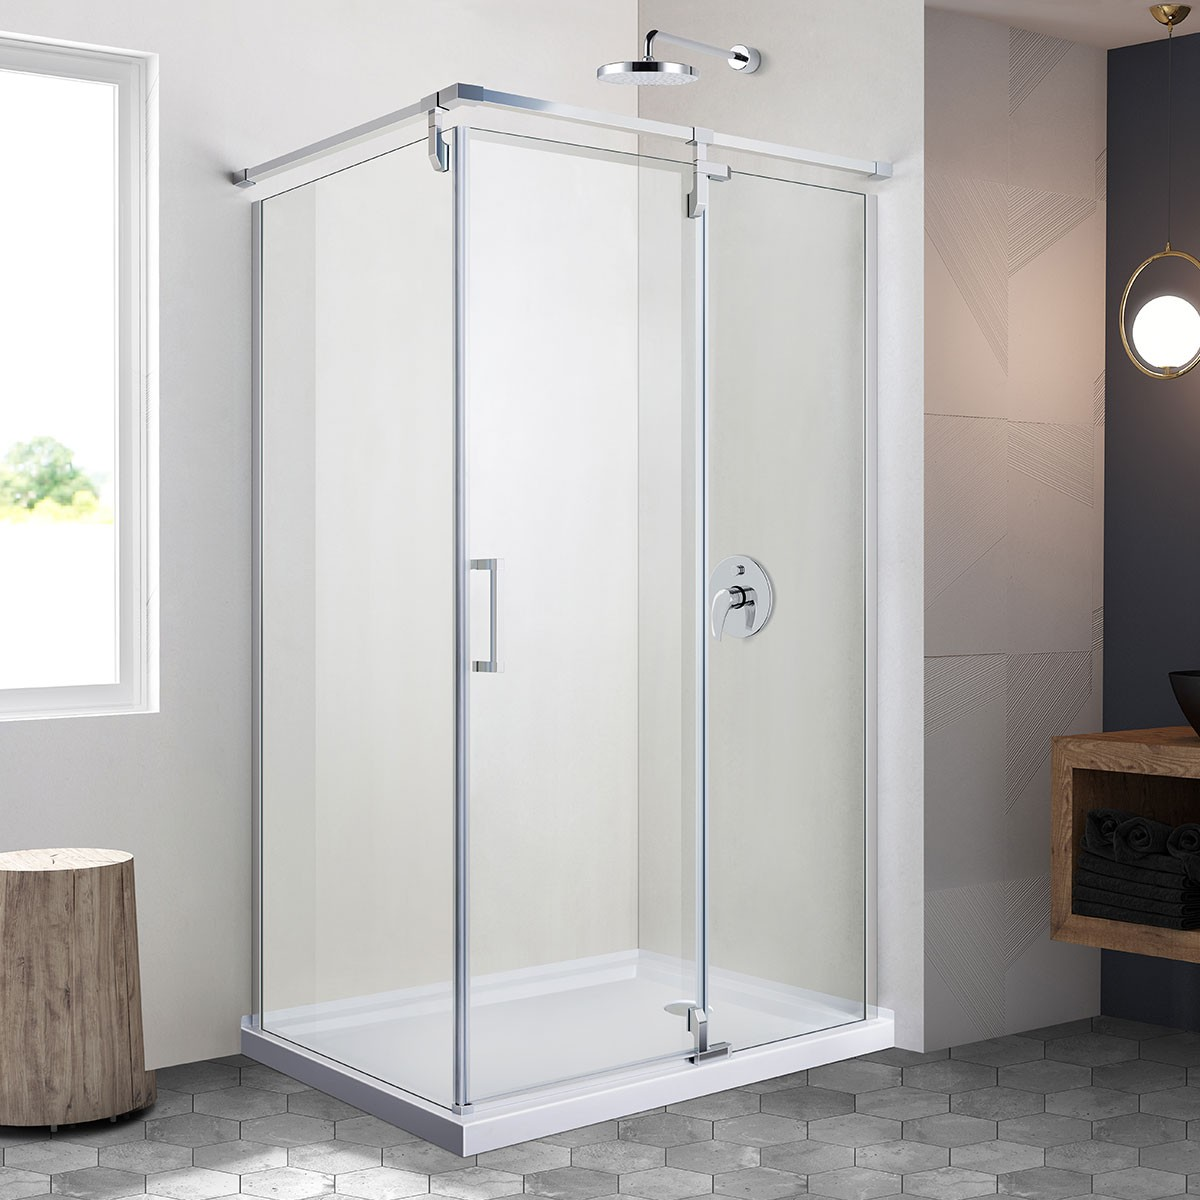 48 In. Pivot Shower Door with 36 In. Side Panel (DK-ZD1002-8R)